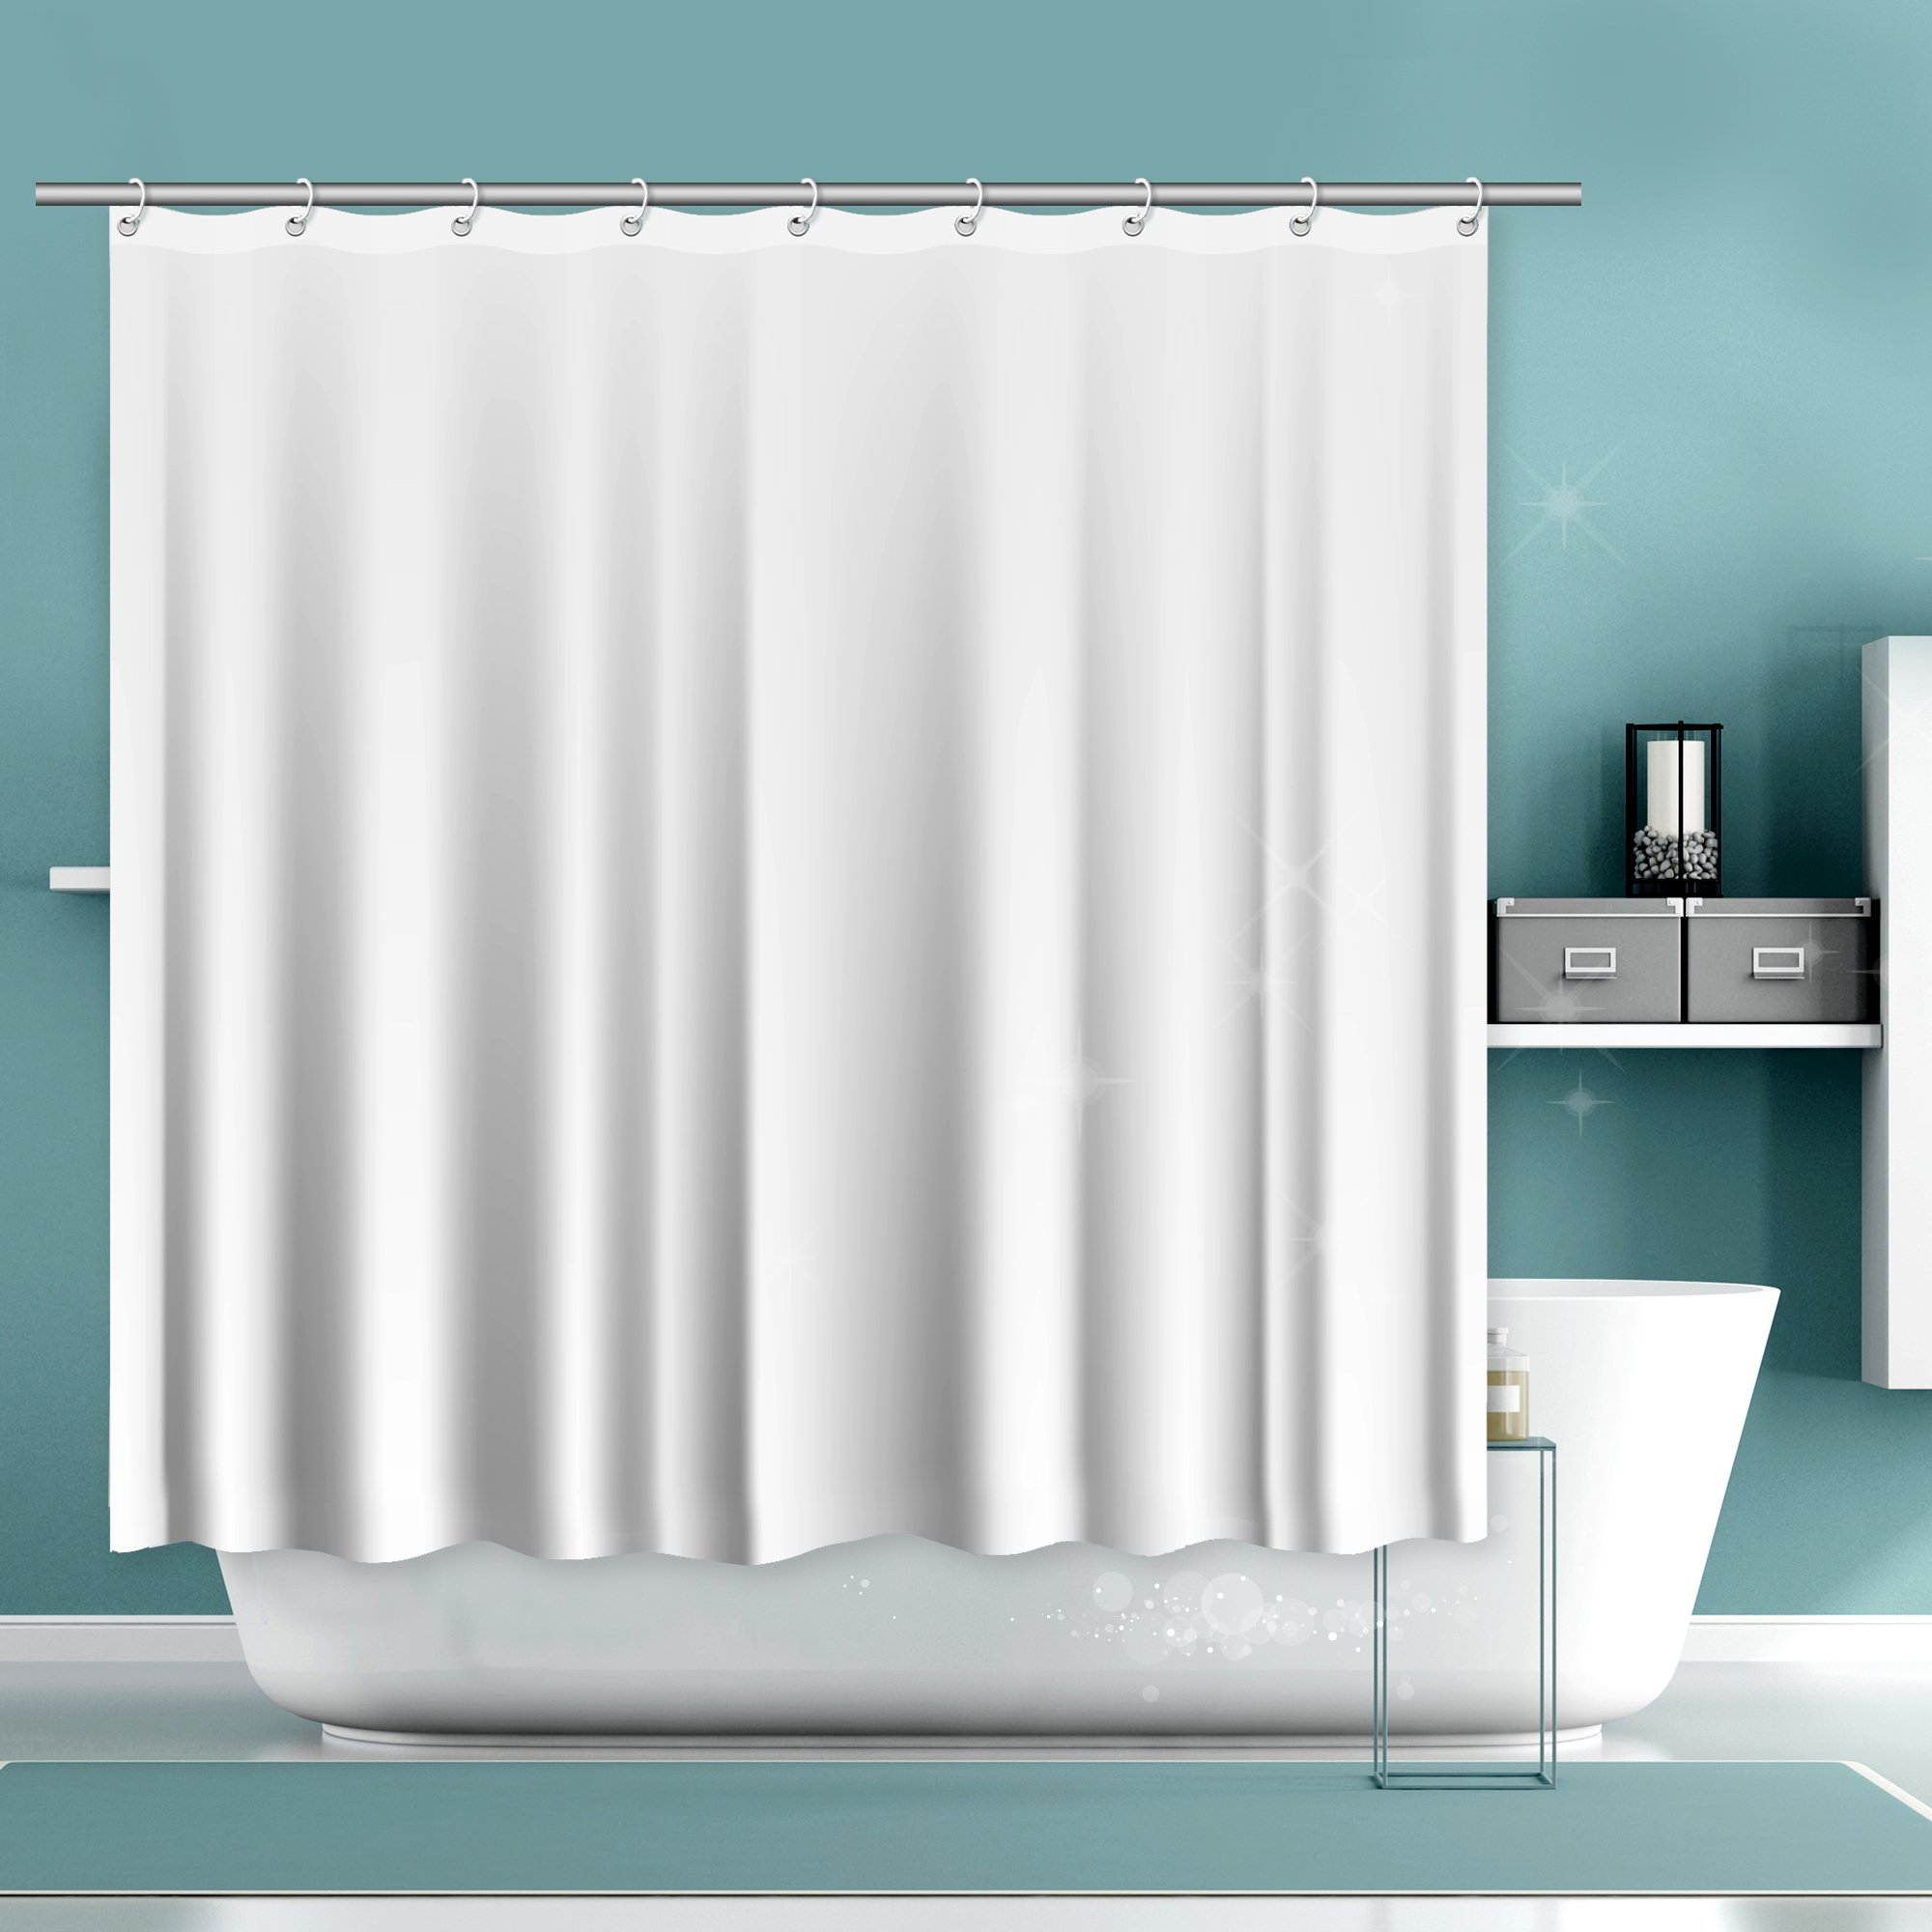 "White Shower Curtain Liner Set – With 2 Free Bar Soaps, Mold and Mildew Resistant, Water Repellent,Antibacterial & Eco Friendly, Hotel Grade, Bathroom Curtain Liner –Standard Size 71"" x 71"""